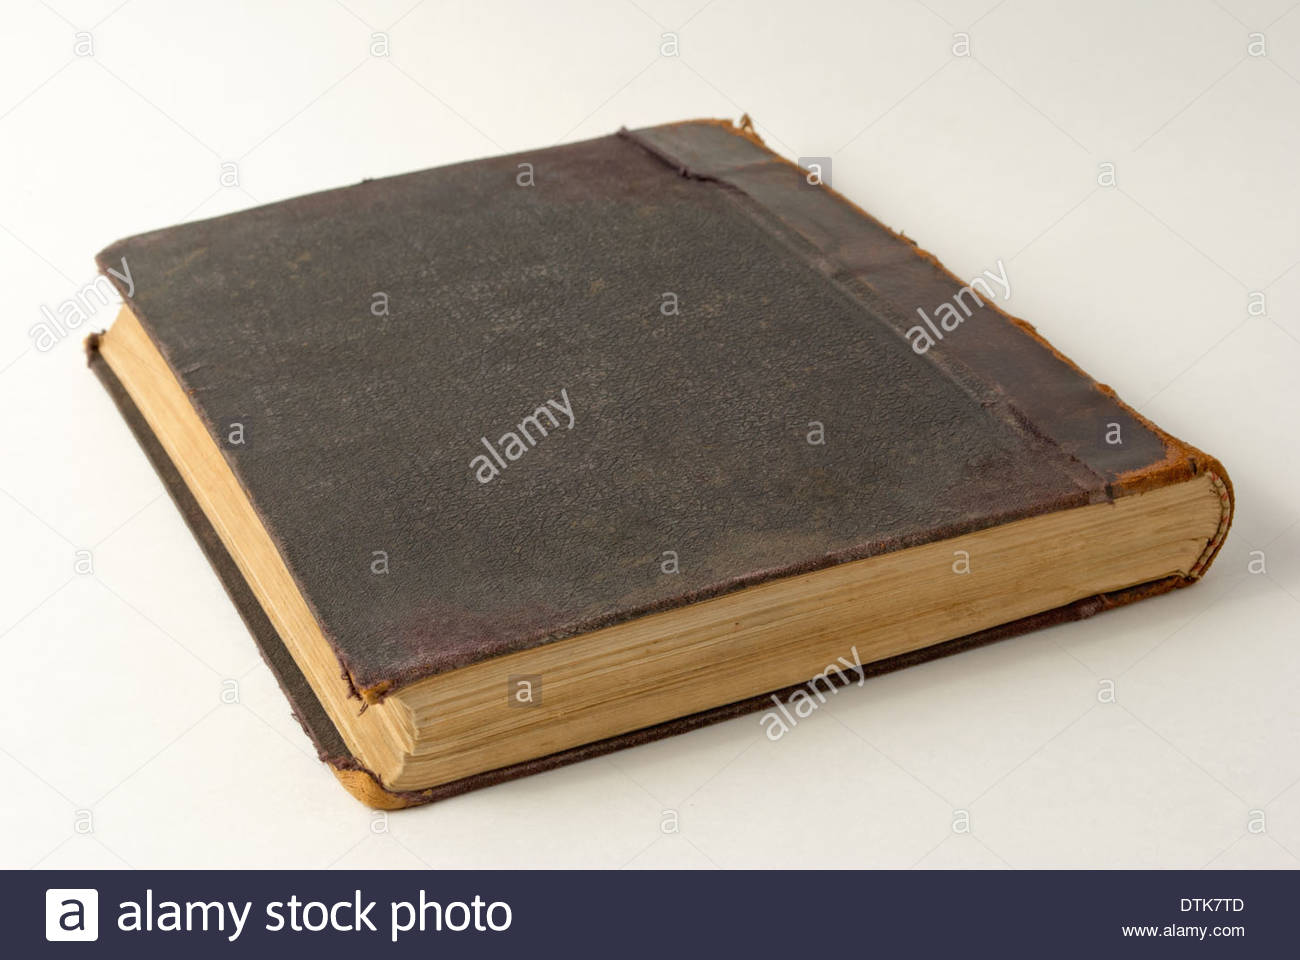 An old book close up on a light background. - Stock Image